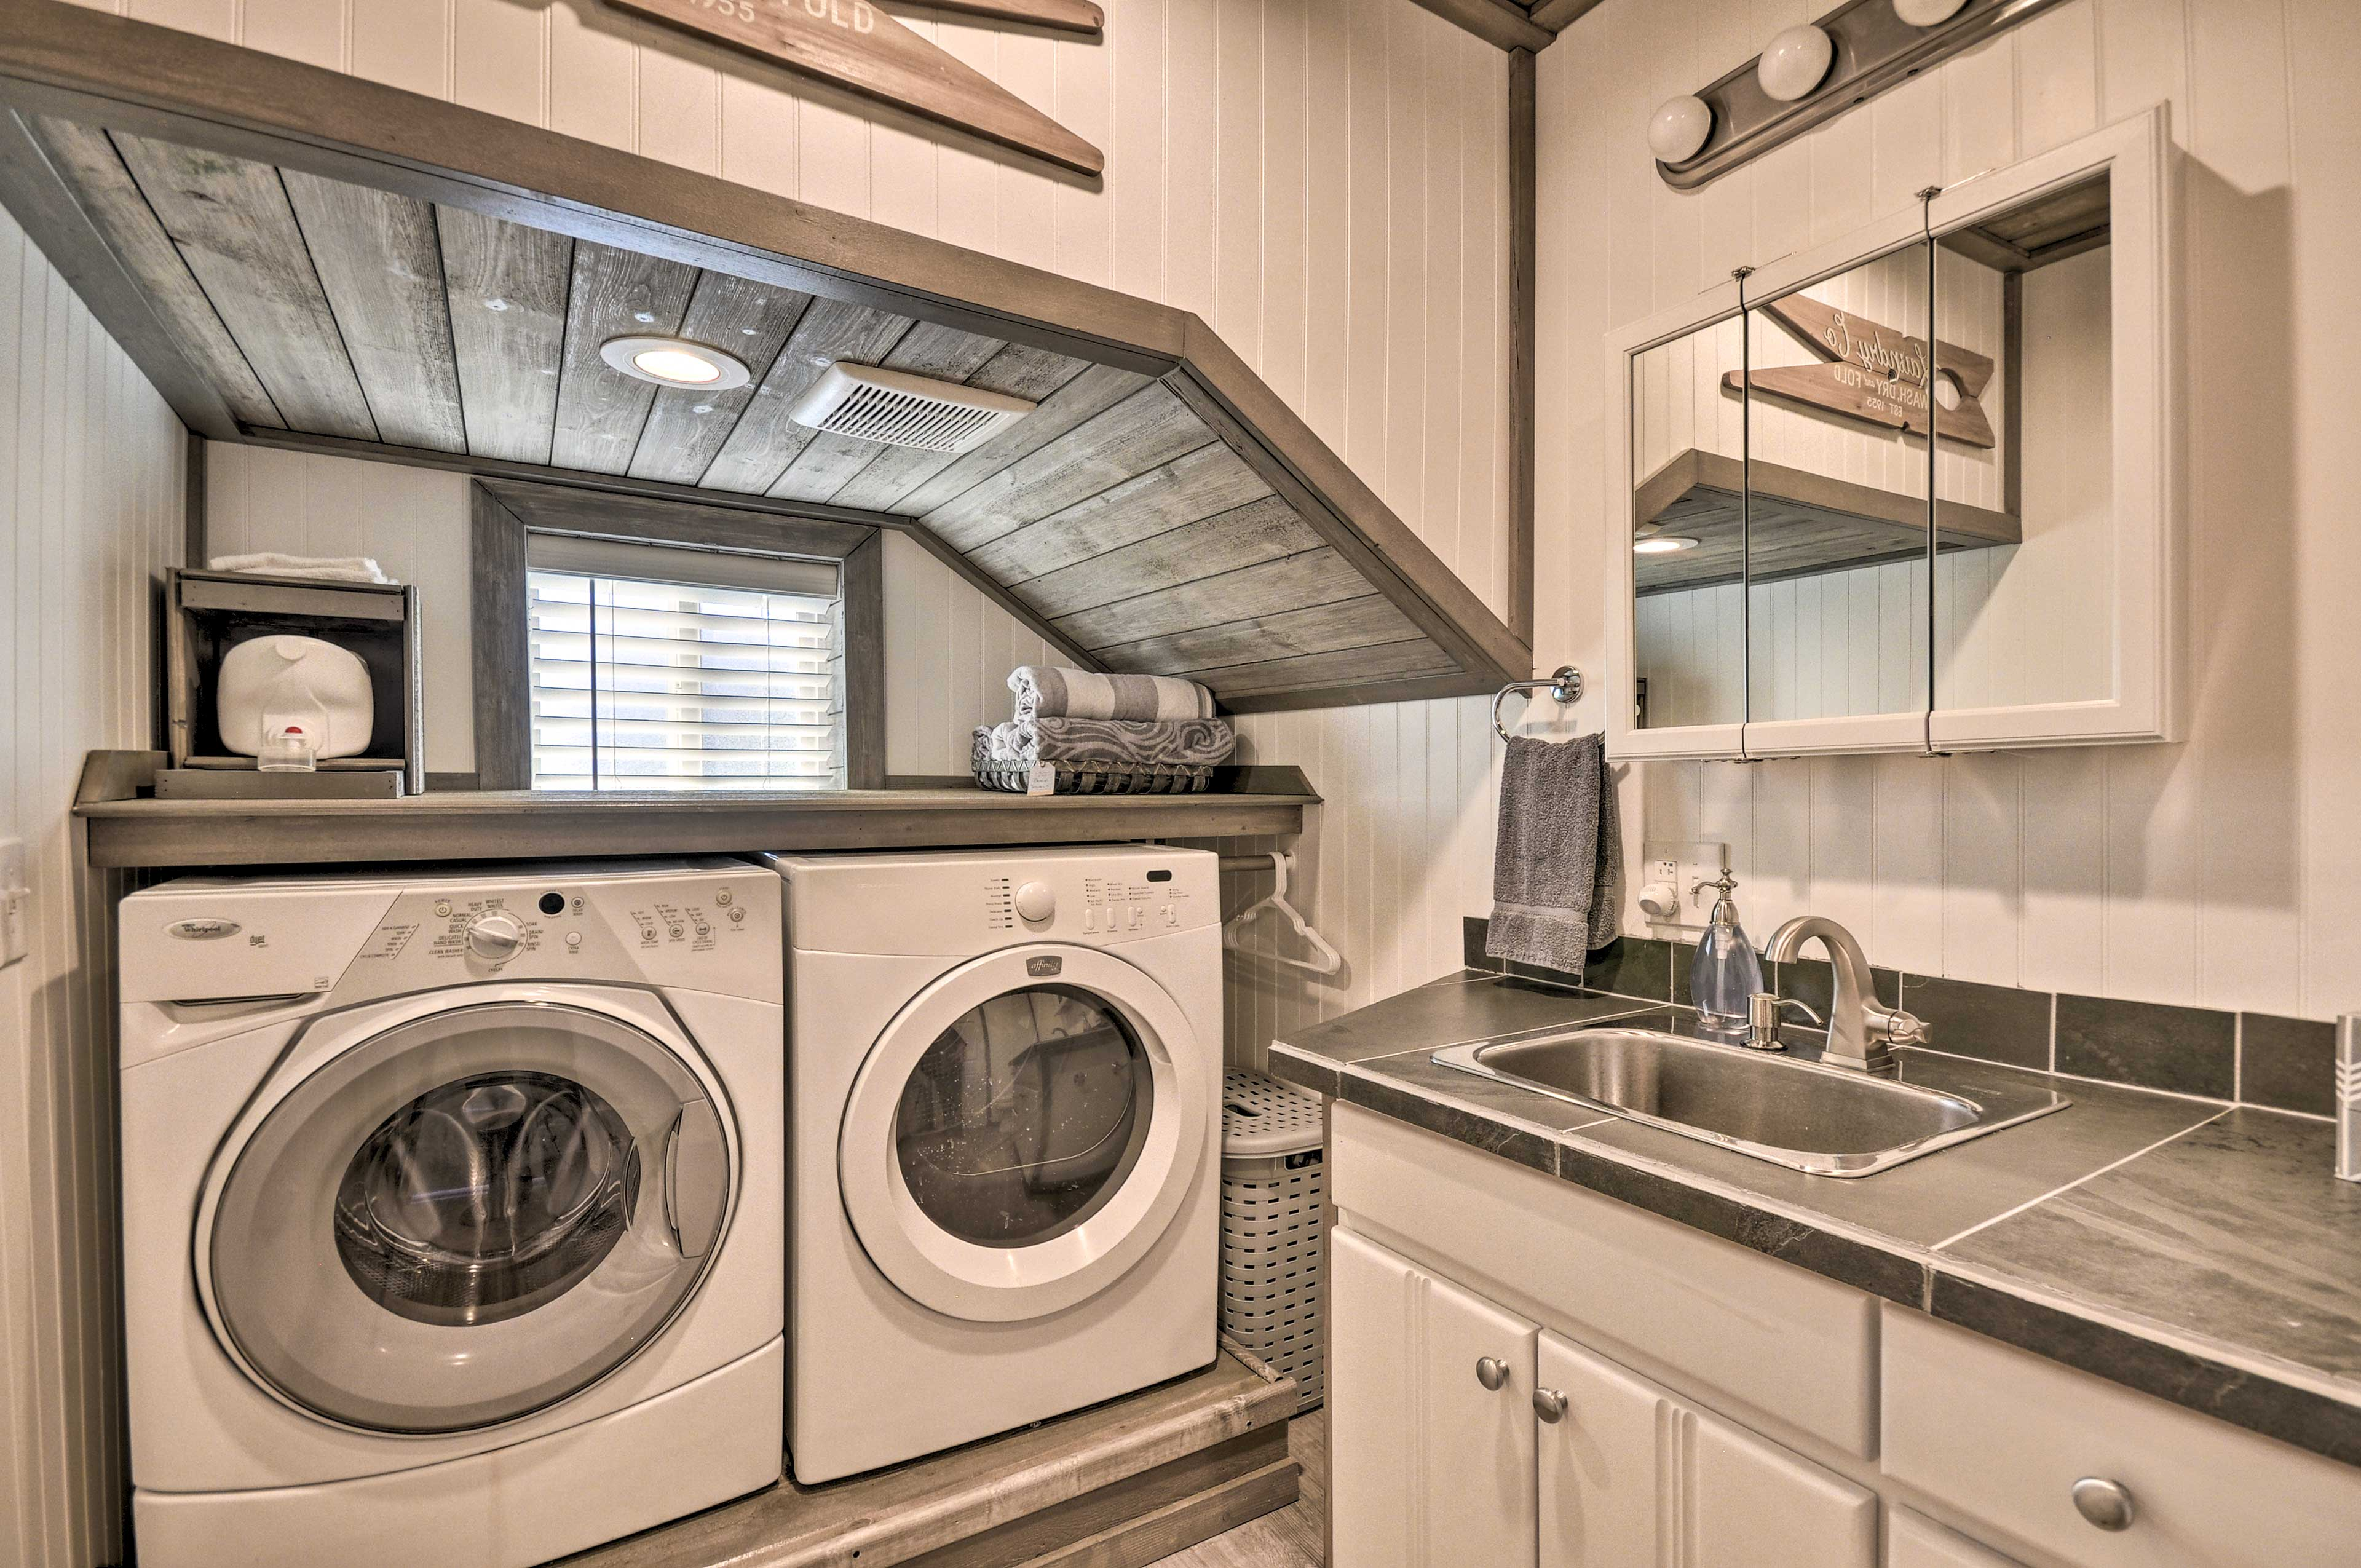 Keep your belongings fresh and clean with the in-home washer and dryer.